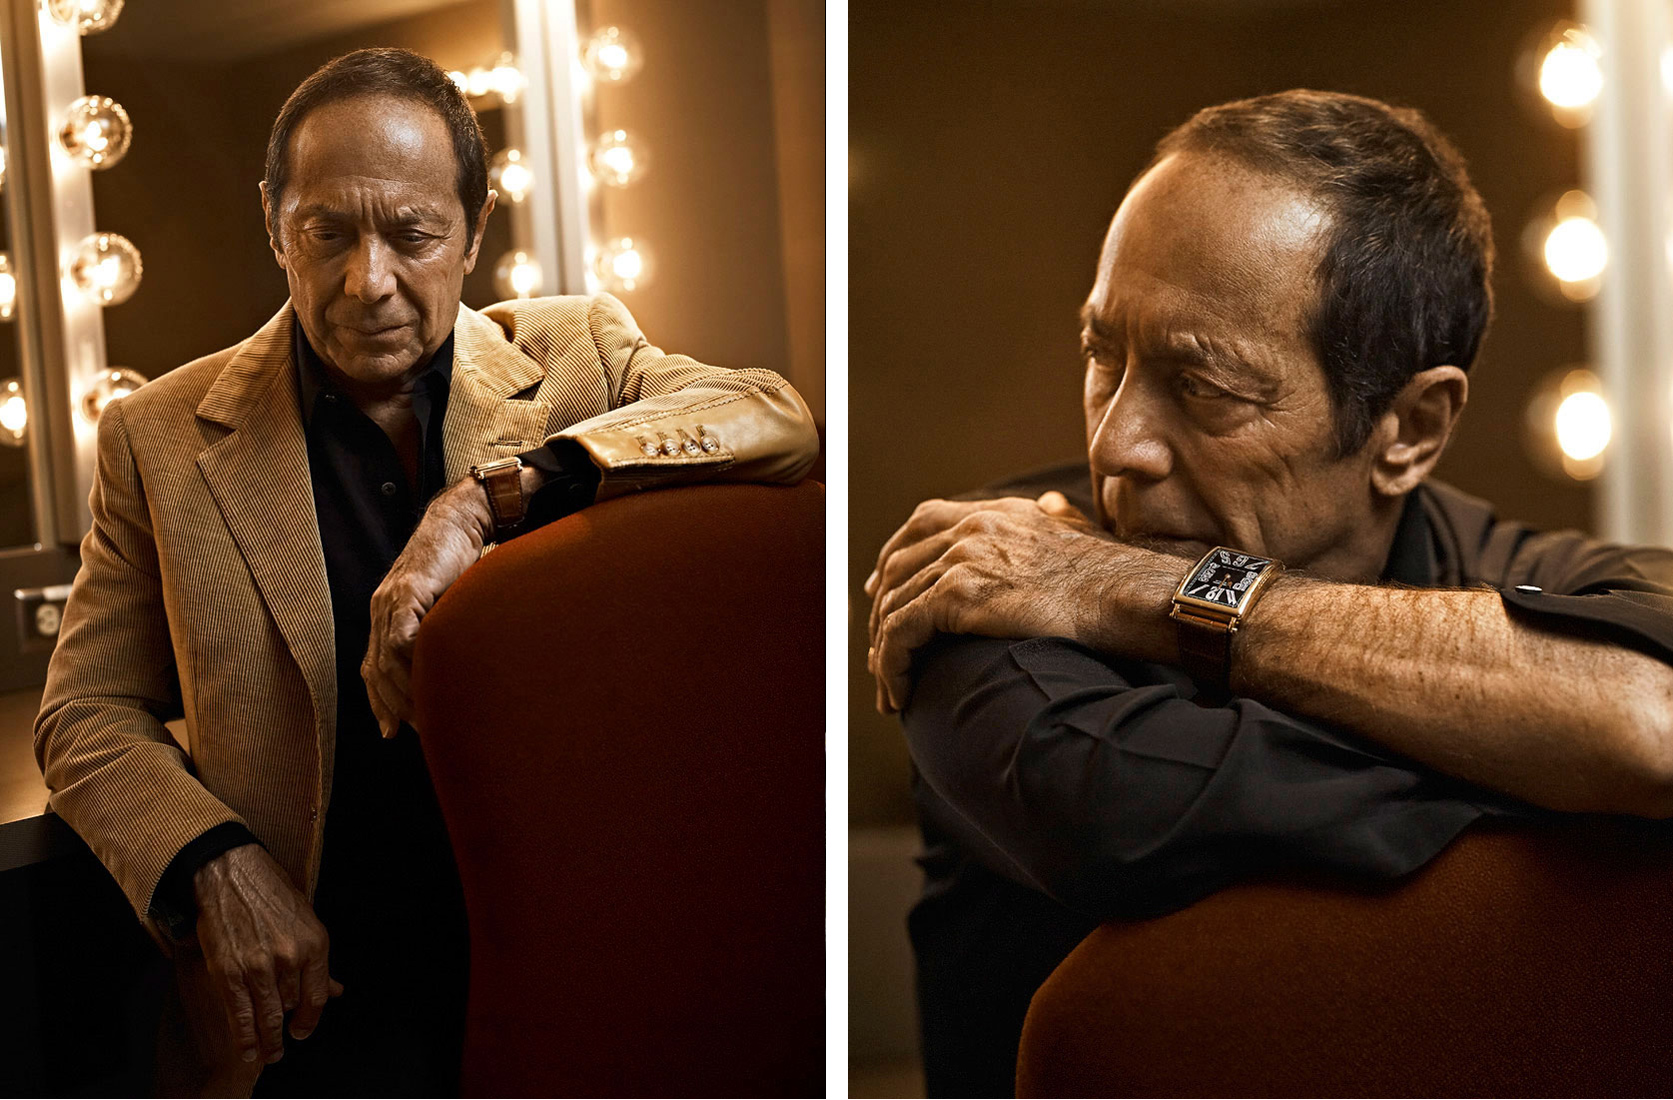 Singer Songwriter Paul Anka post concert portraits by Vancouver Celebrity photographer